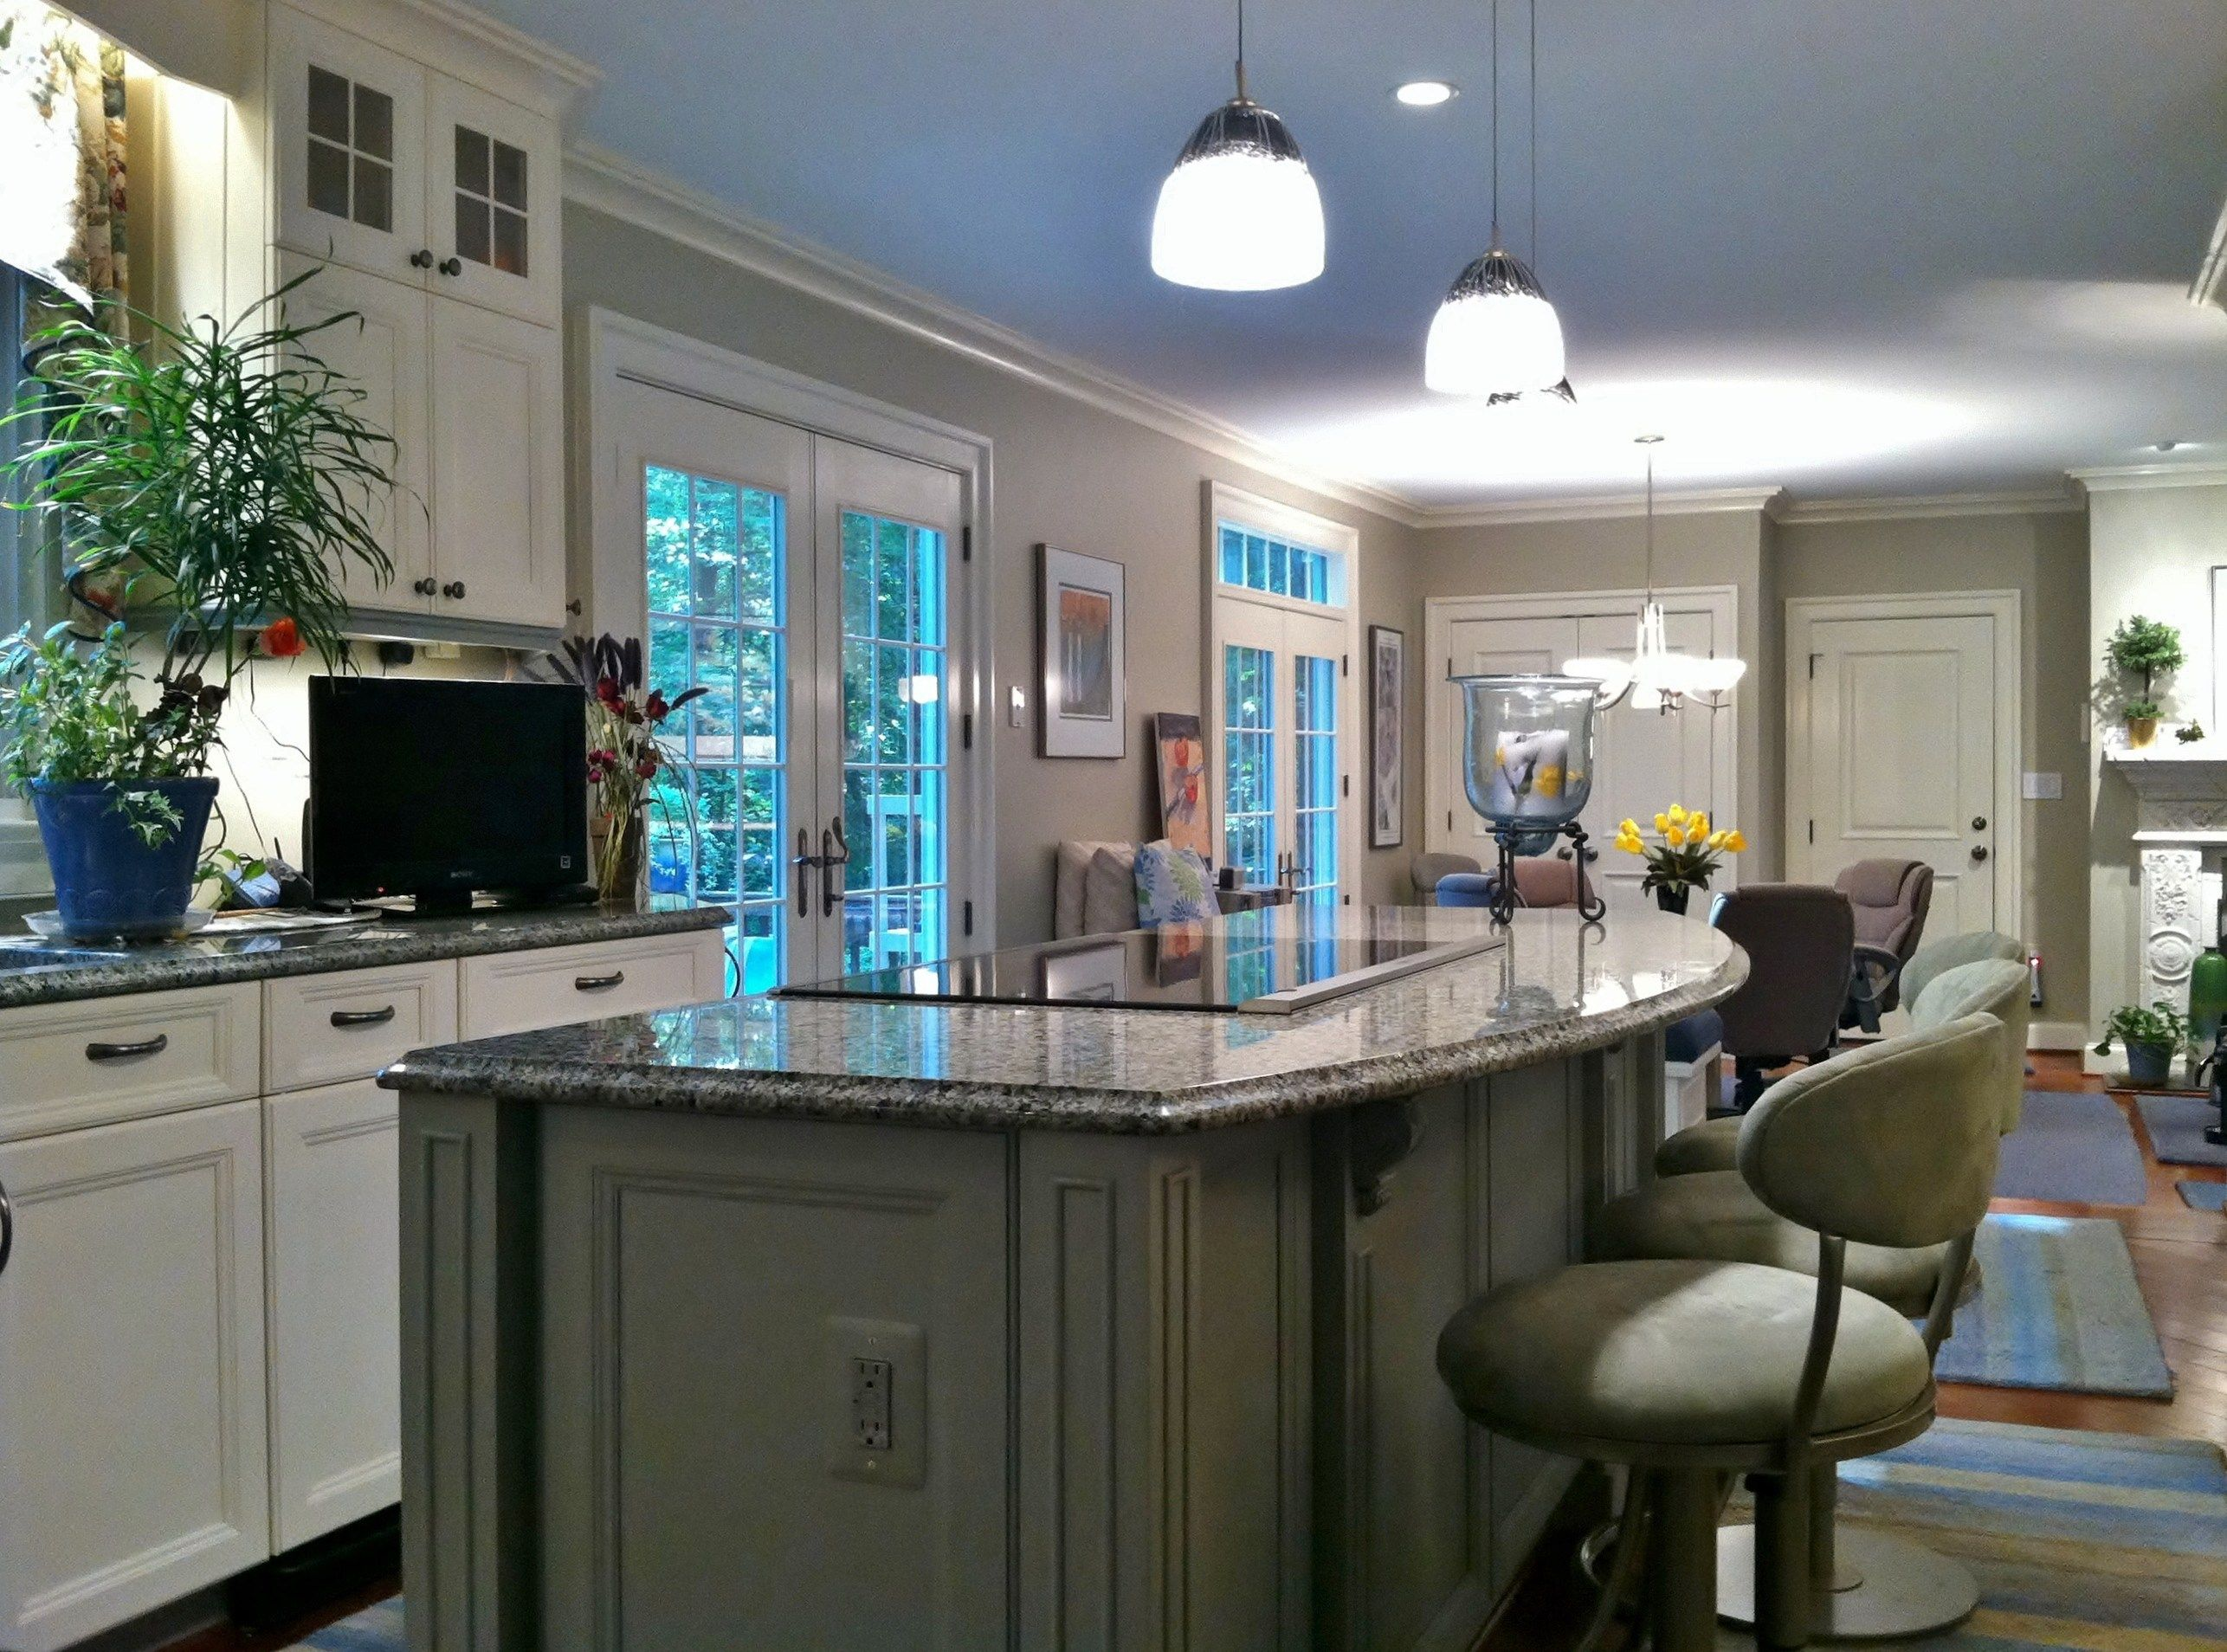 amazing teal kitchen cabinets kitchen cabinets teal kitchen ...